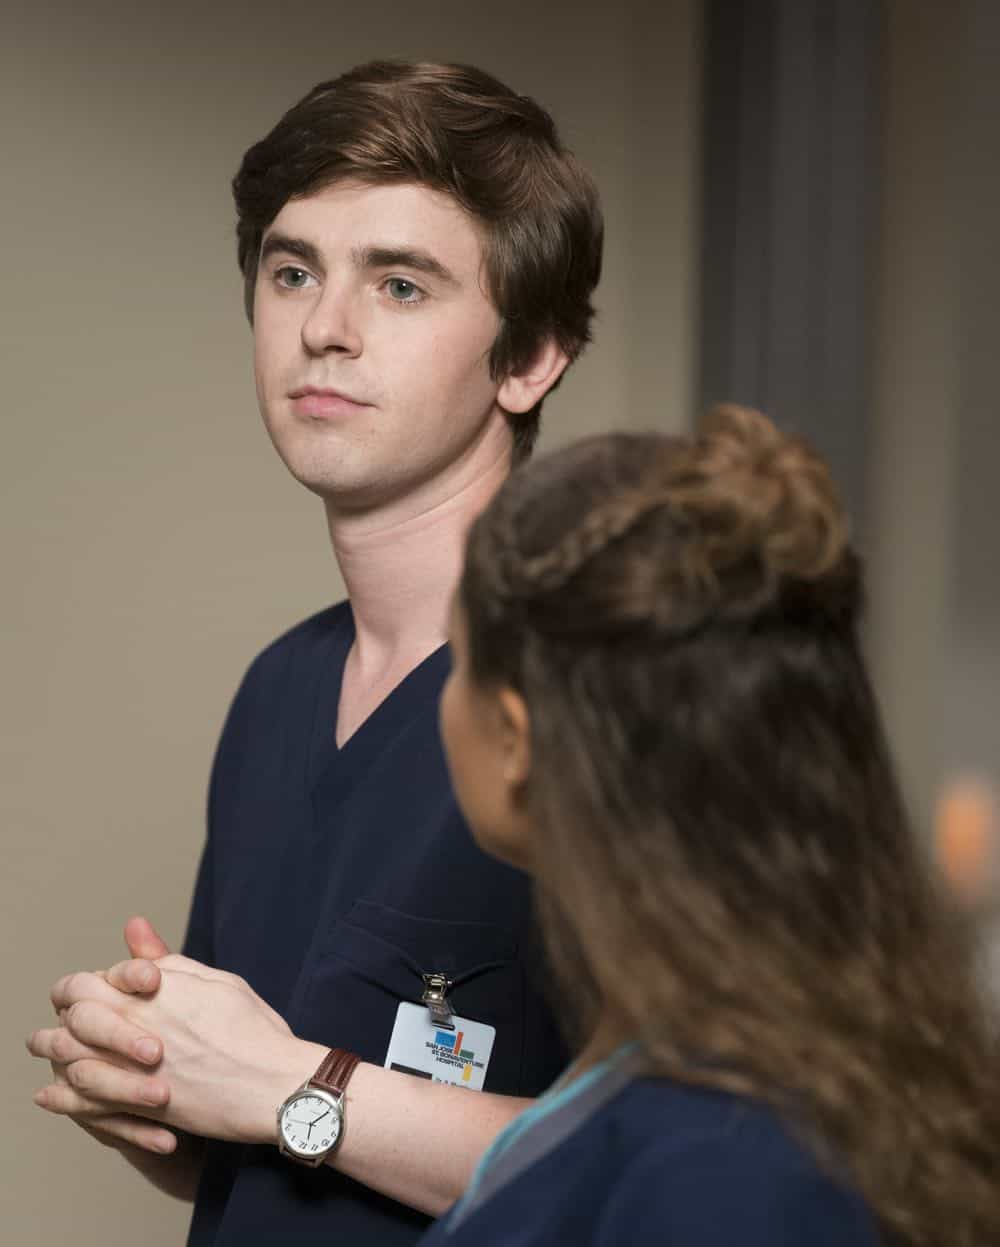 THE GOOD DOCTOR Season 2 Episode 2 Middle Ground 24